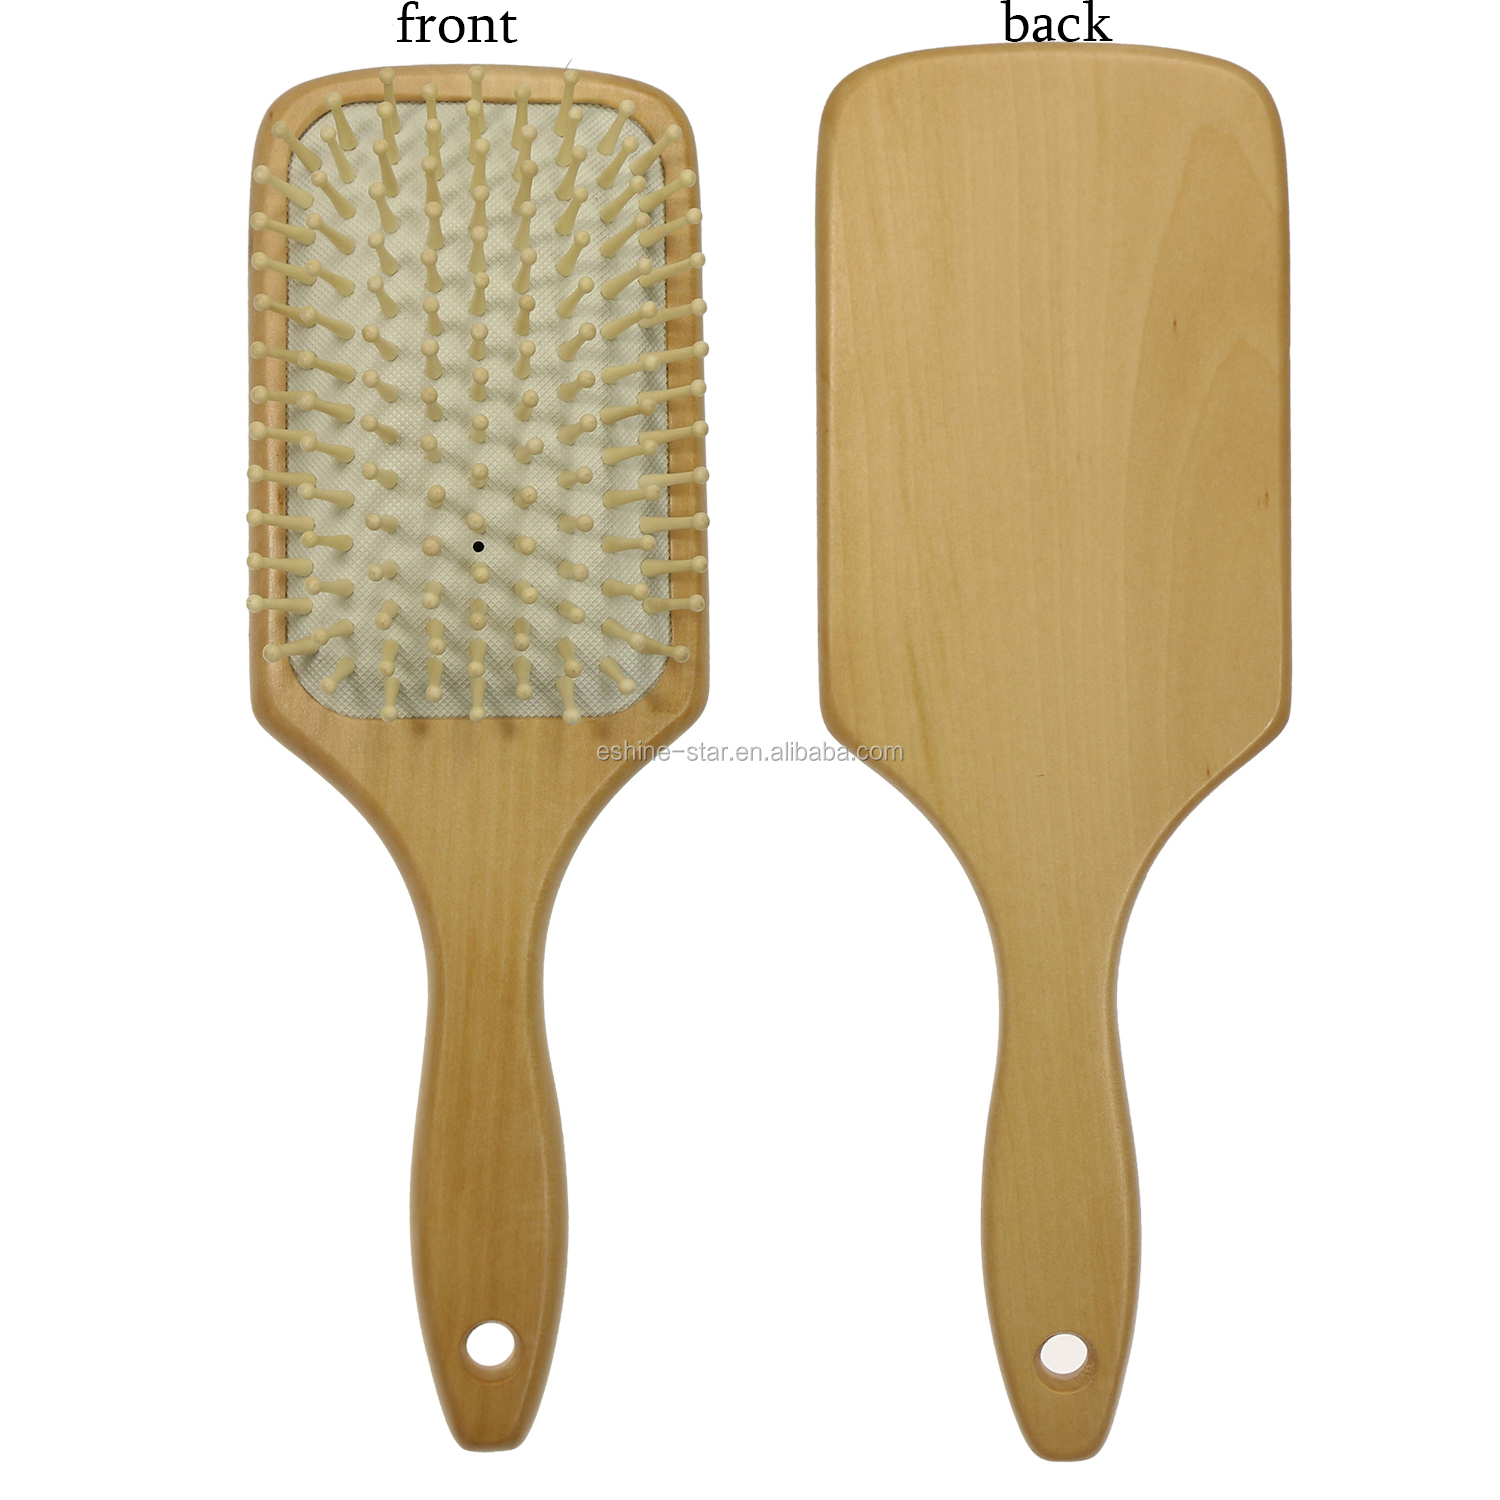 square size natural wooden hair brush paddle and cushion wood hair brush